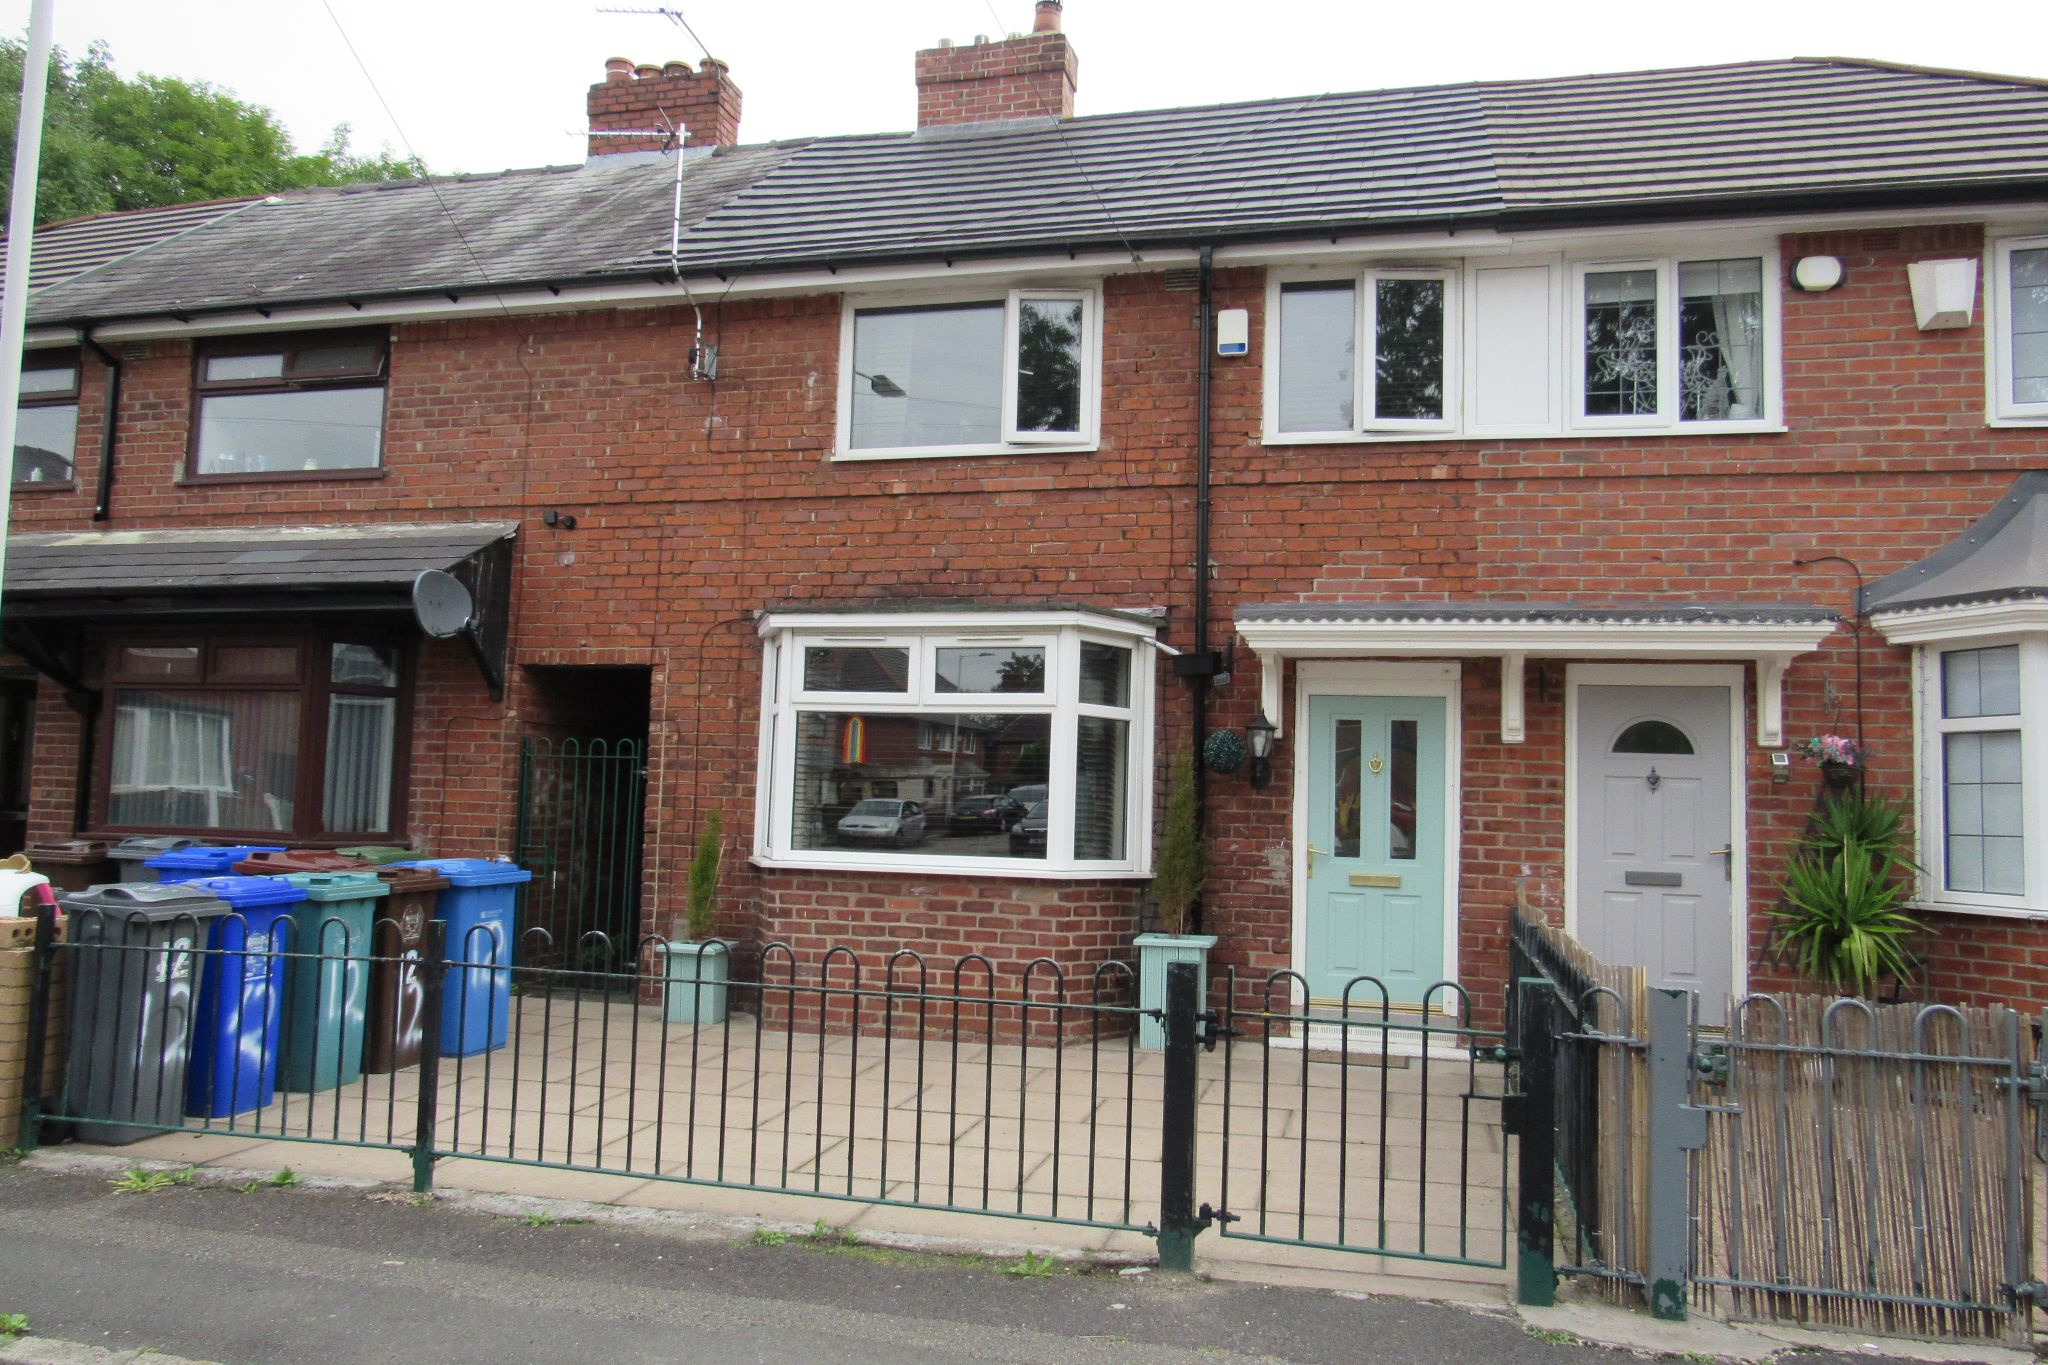 3 bedroom mid terraced house SSTC in Manchester - Photograph 21.